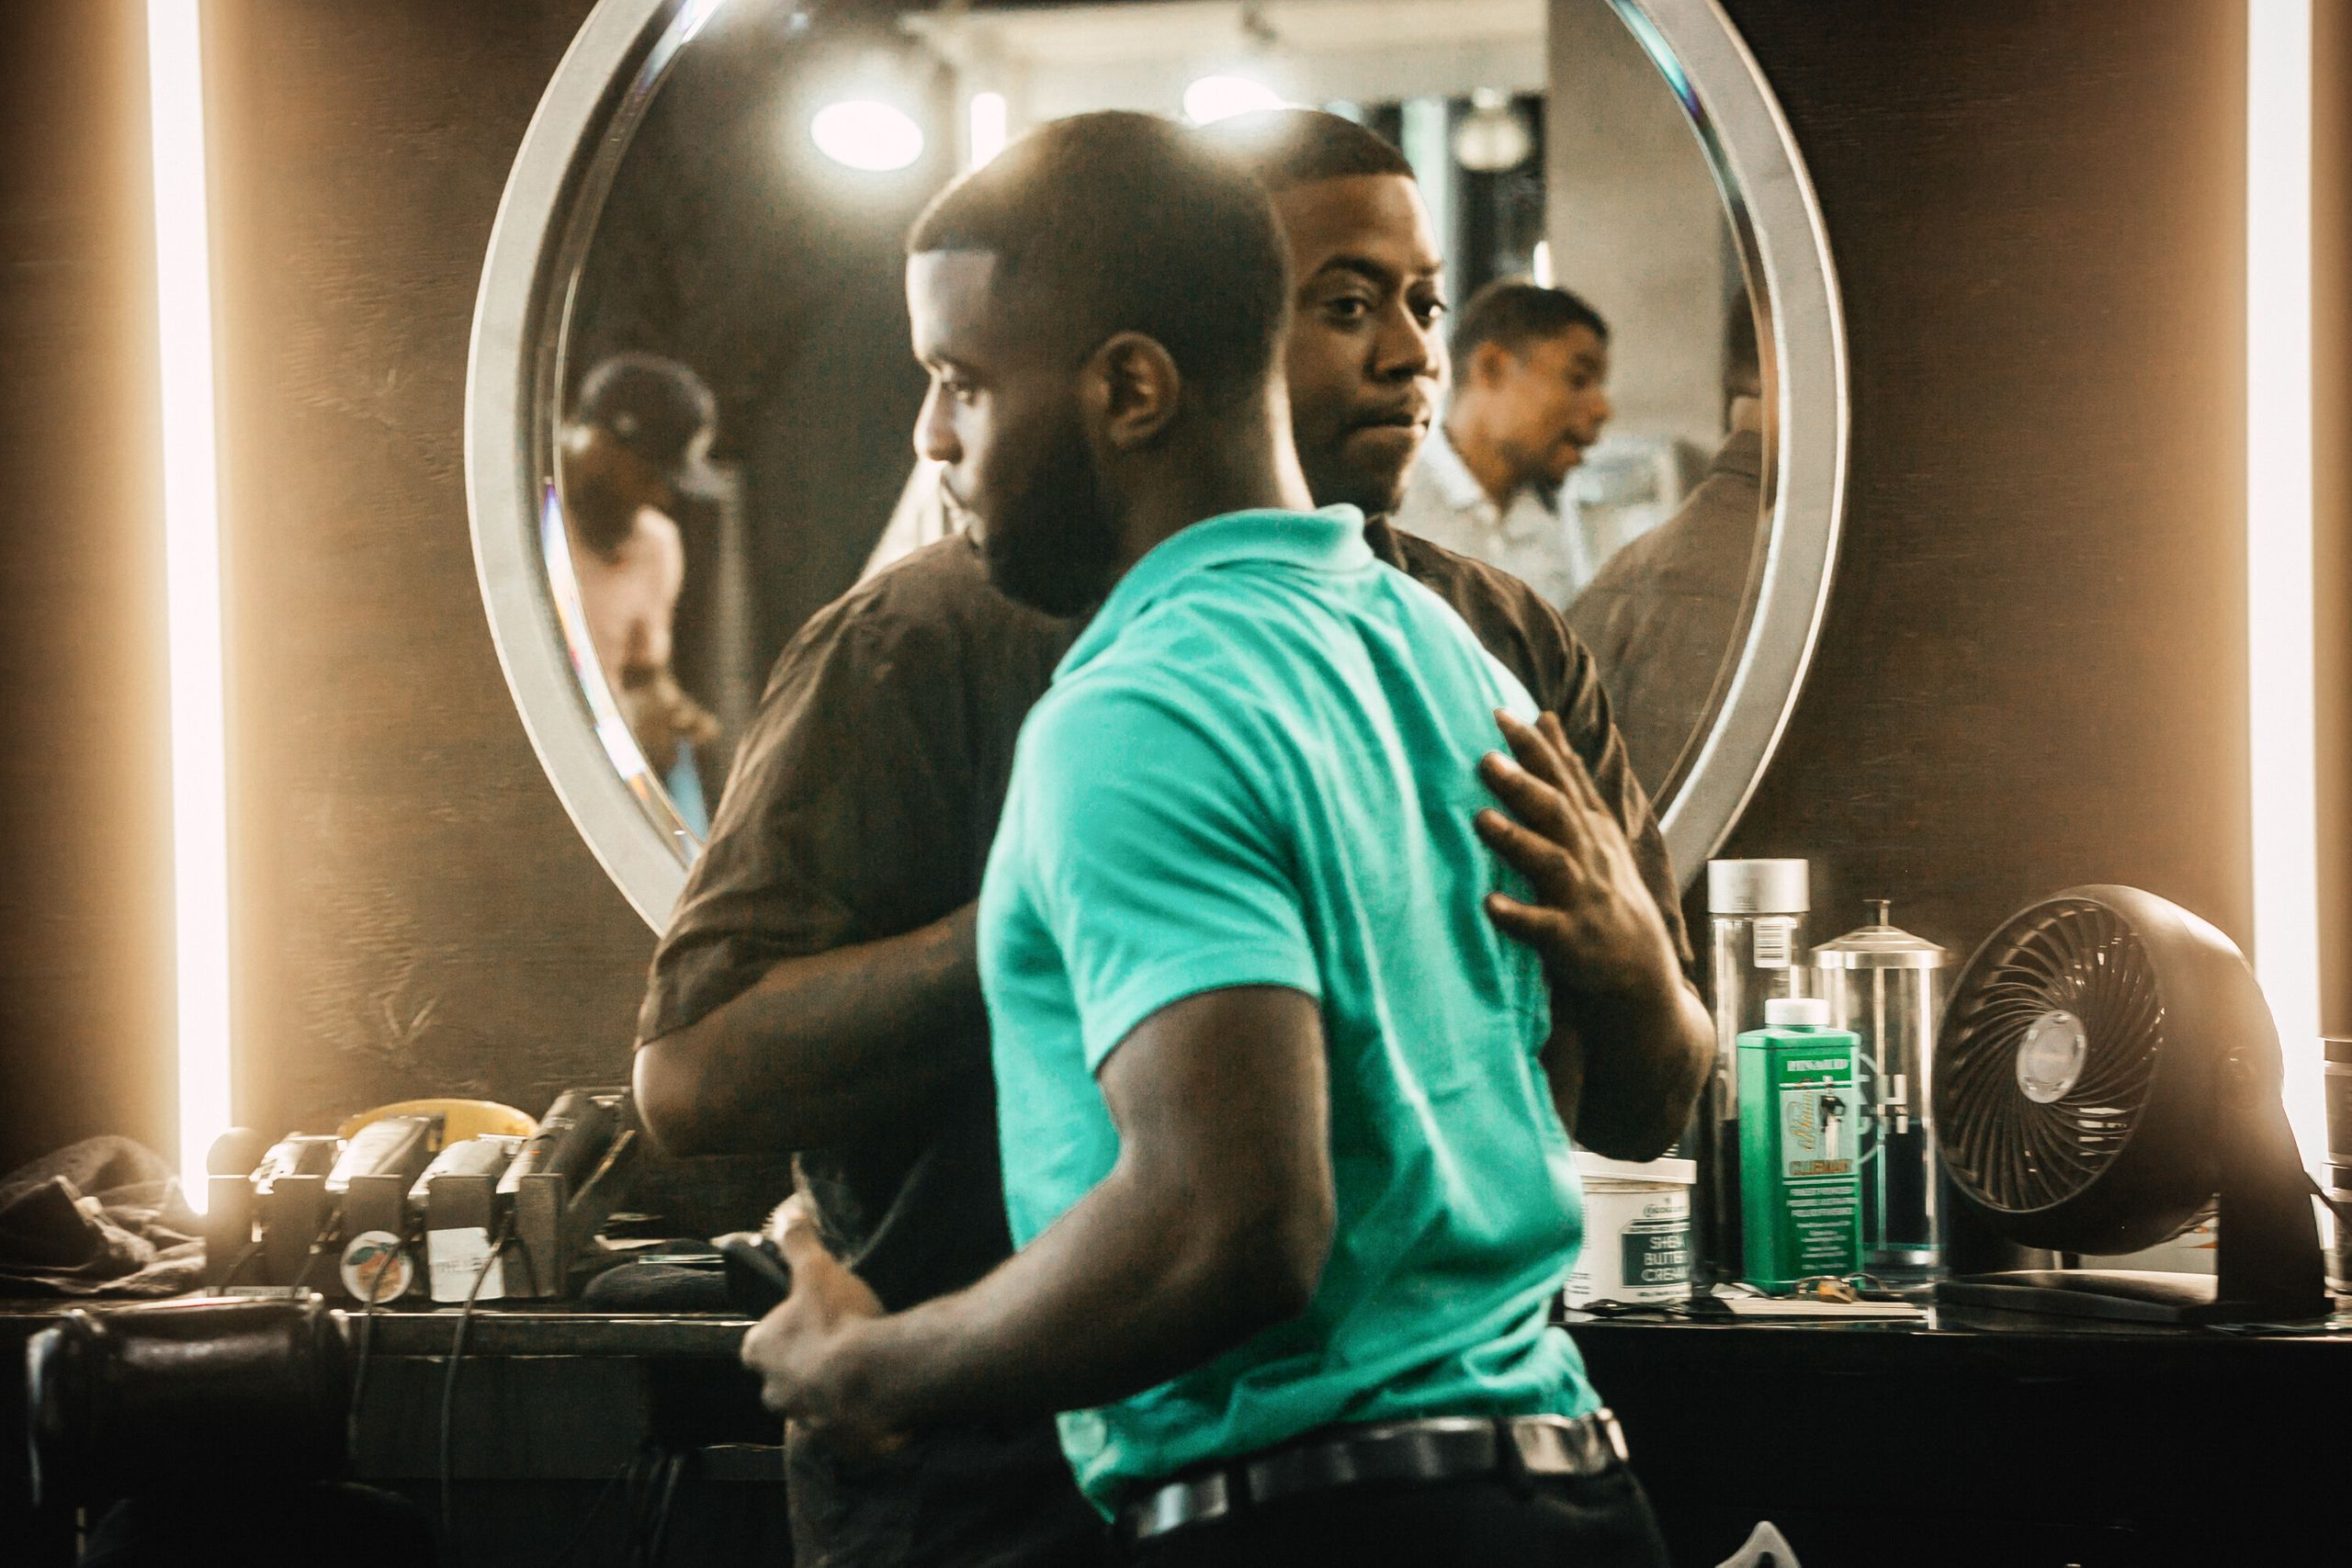 Barbers and their clients build strong relationships and trust over time. That trust is crucial for getting men to open up ab